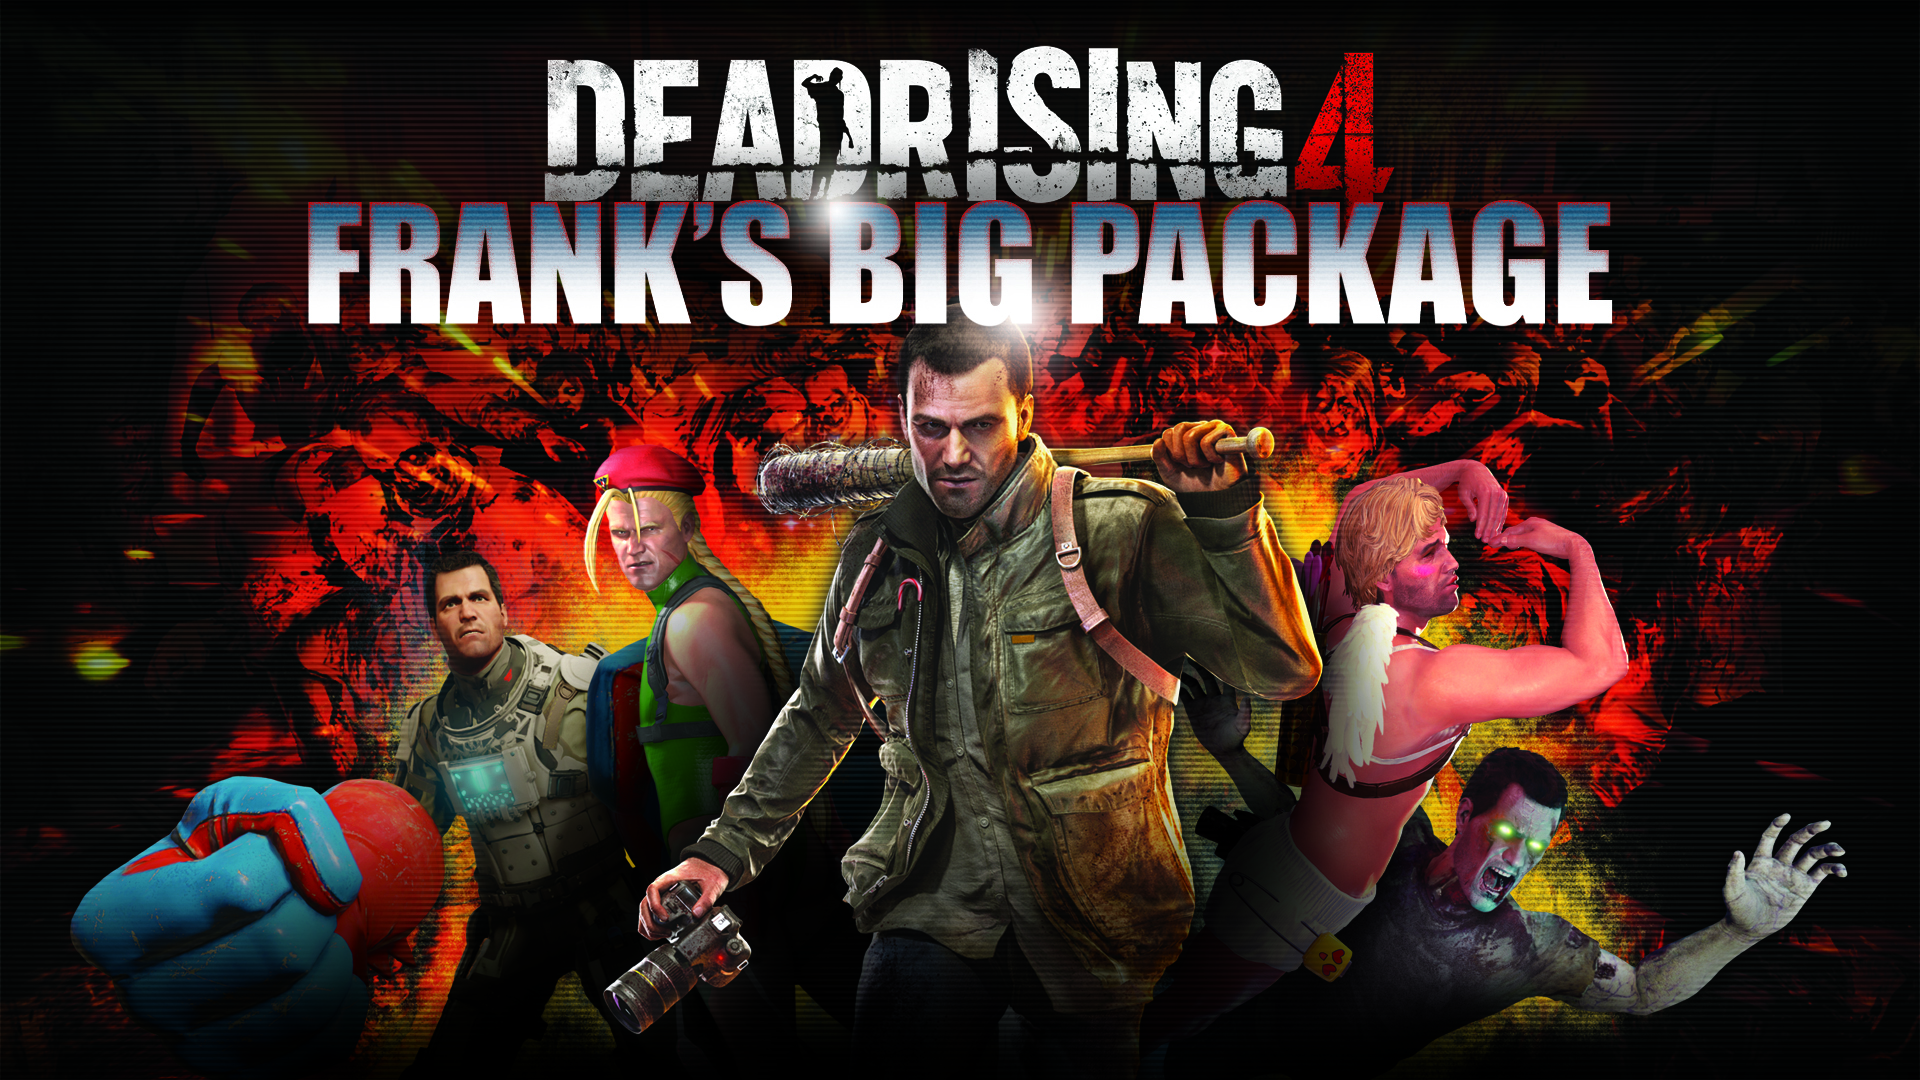 Dead Rising 4: Frank's Big Package - key art